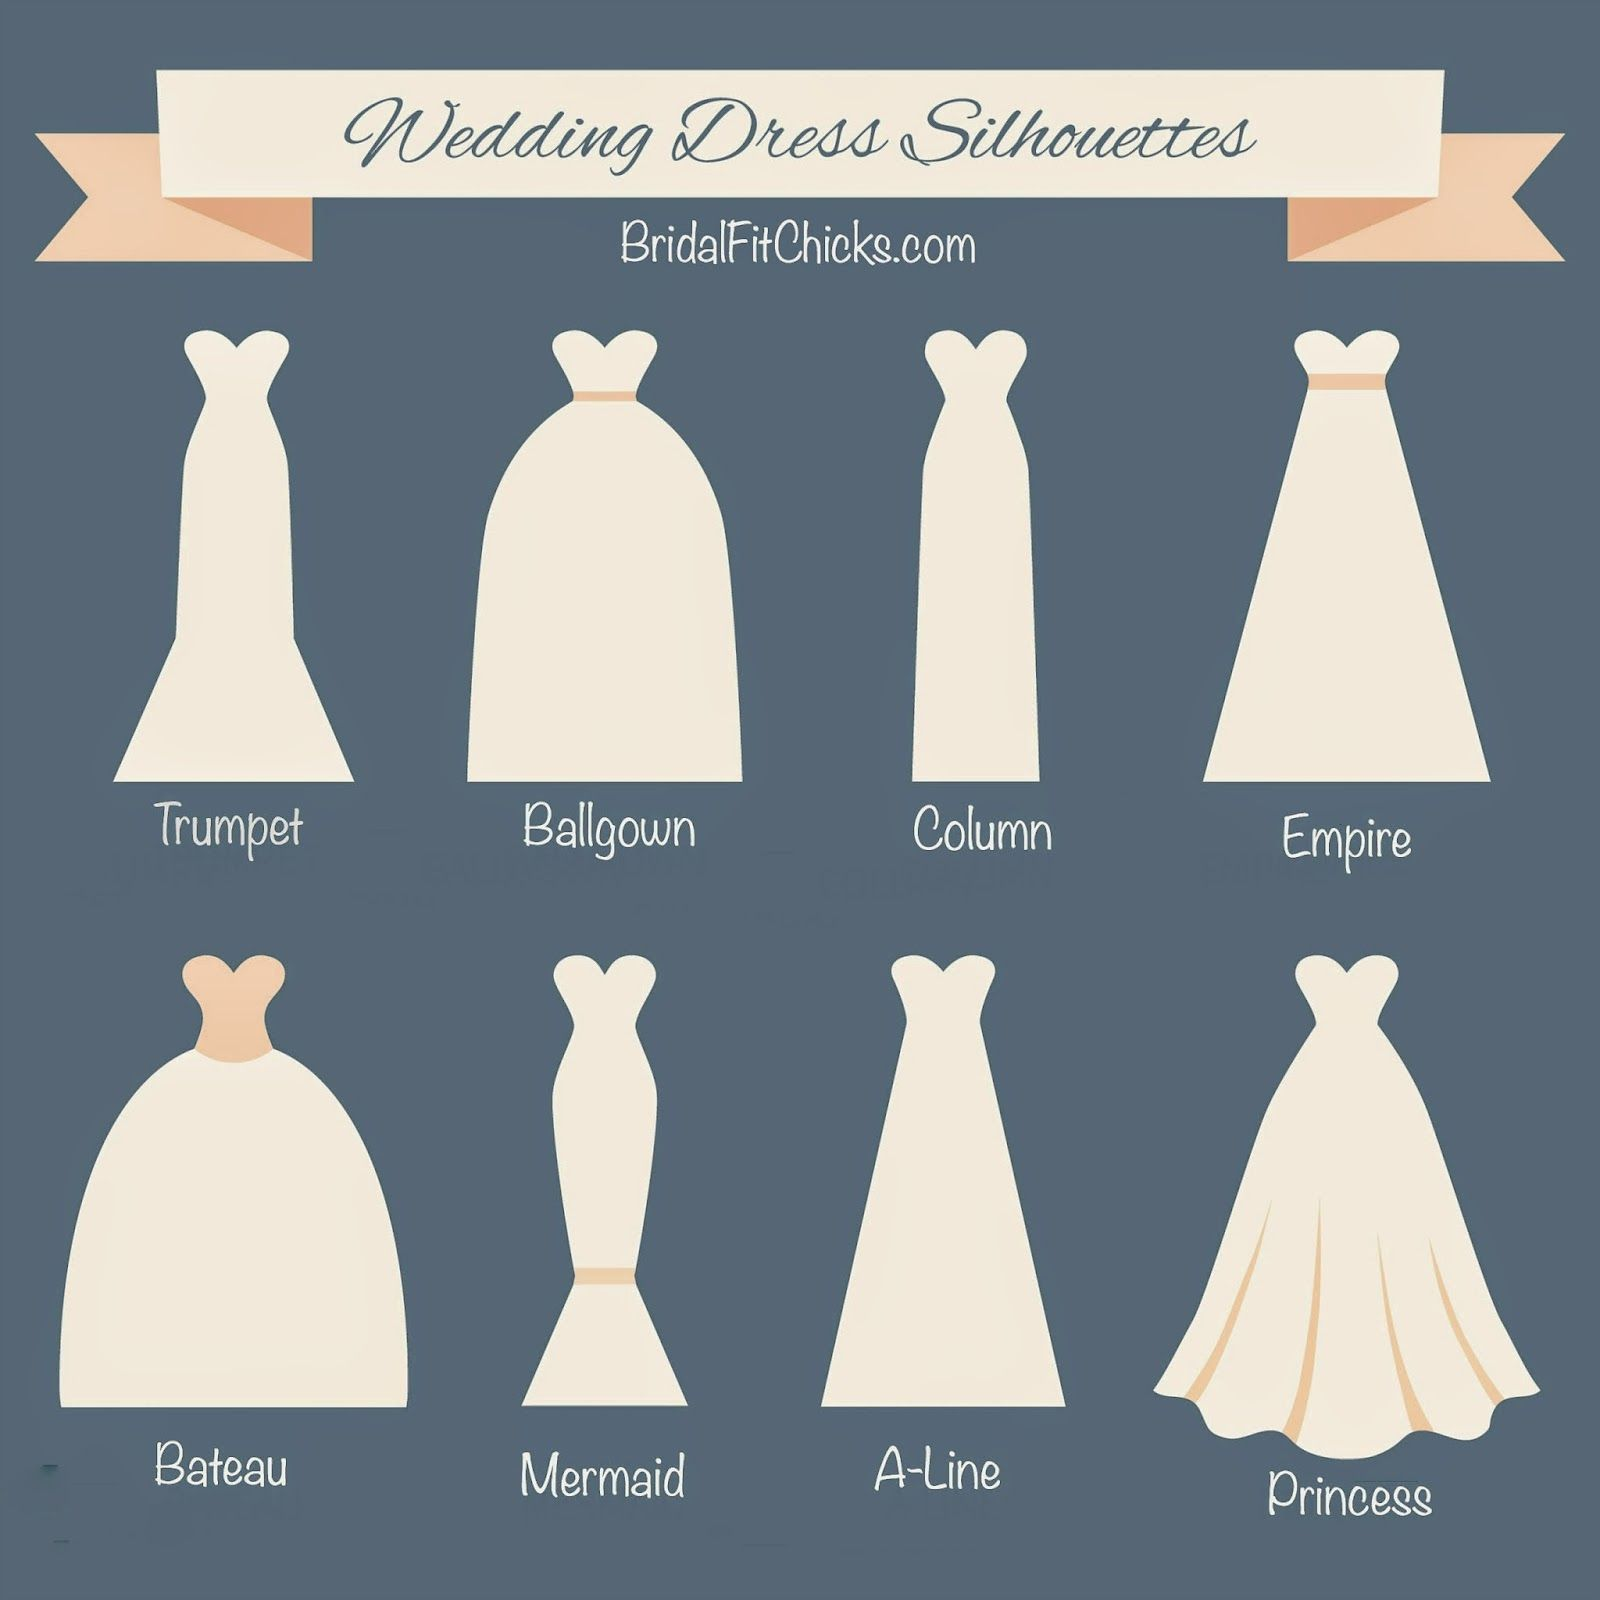 Bridal Fit Chicks A Guide To Shop For Your Perfect Dress Wedding Dress Types Wedding Dress Silhouette Wedding Dress Styles Chart